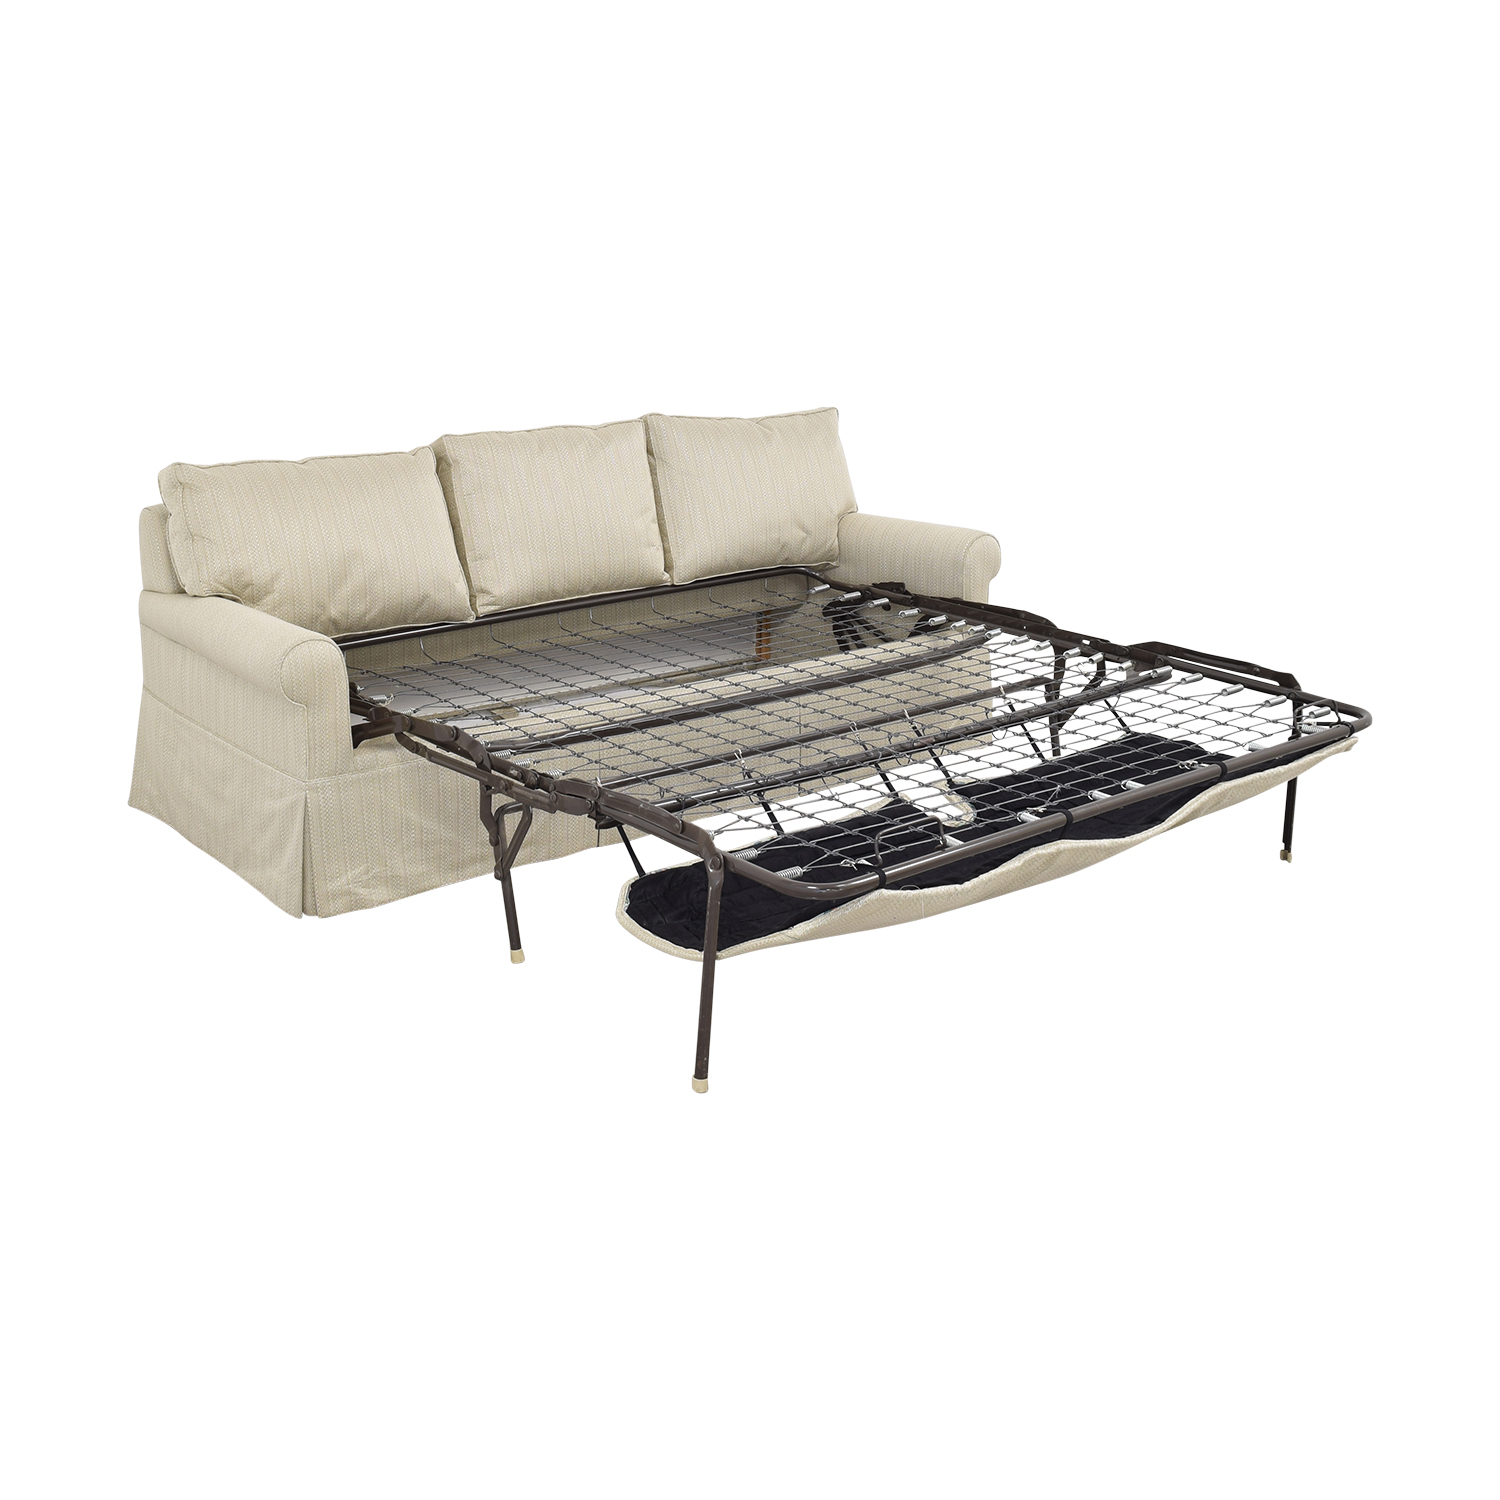 Carlyle Carlyle Queen Plus Sleeper Sofa Sofa Beds